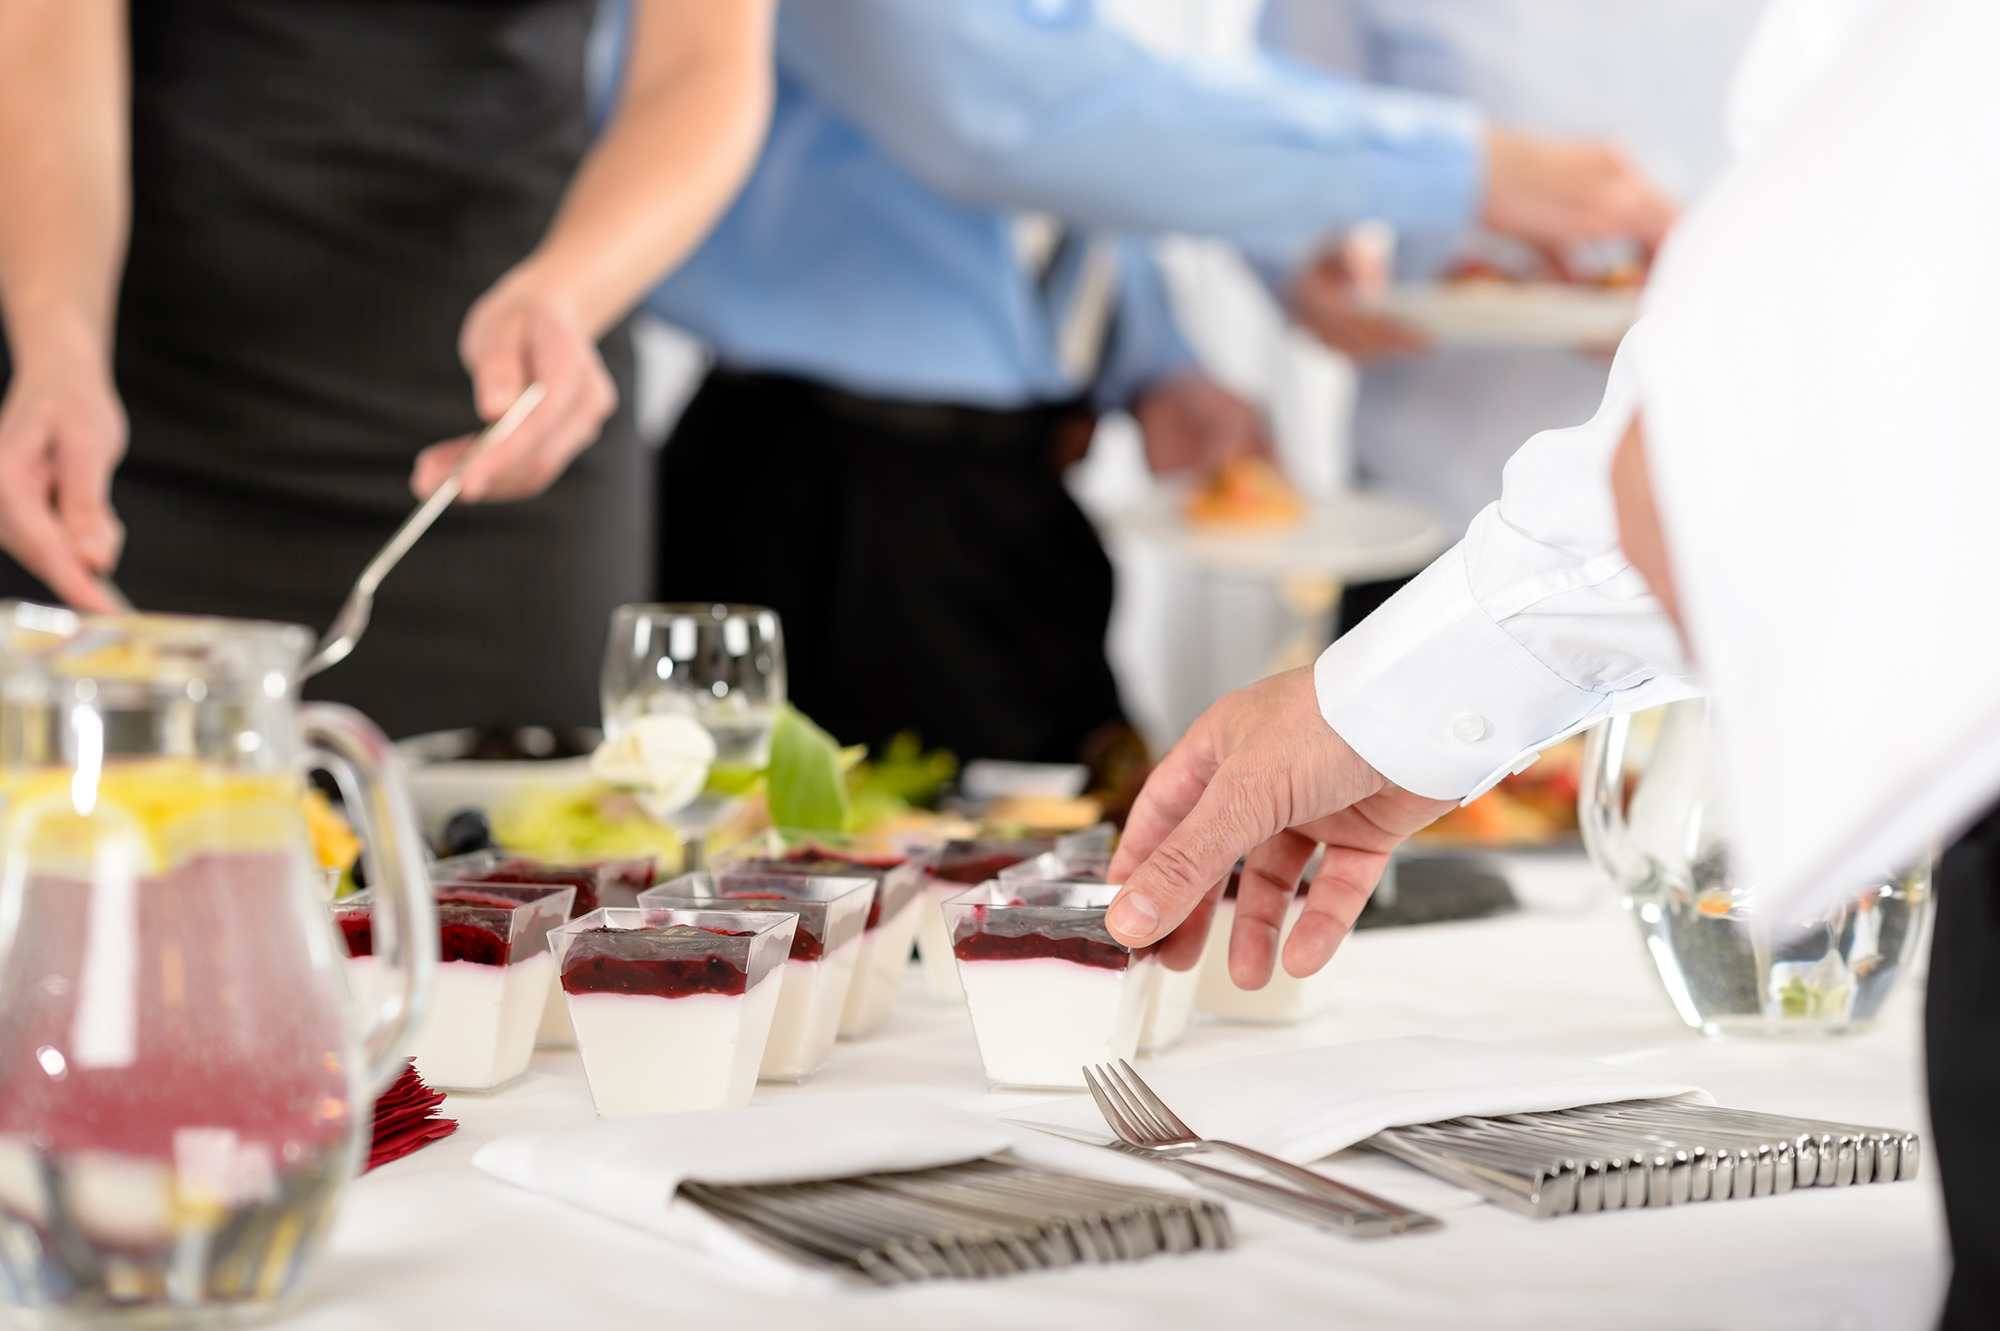 Catering company melbourne devour it catering for Canape catering melbourne